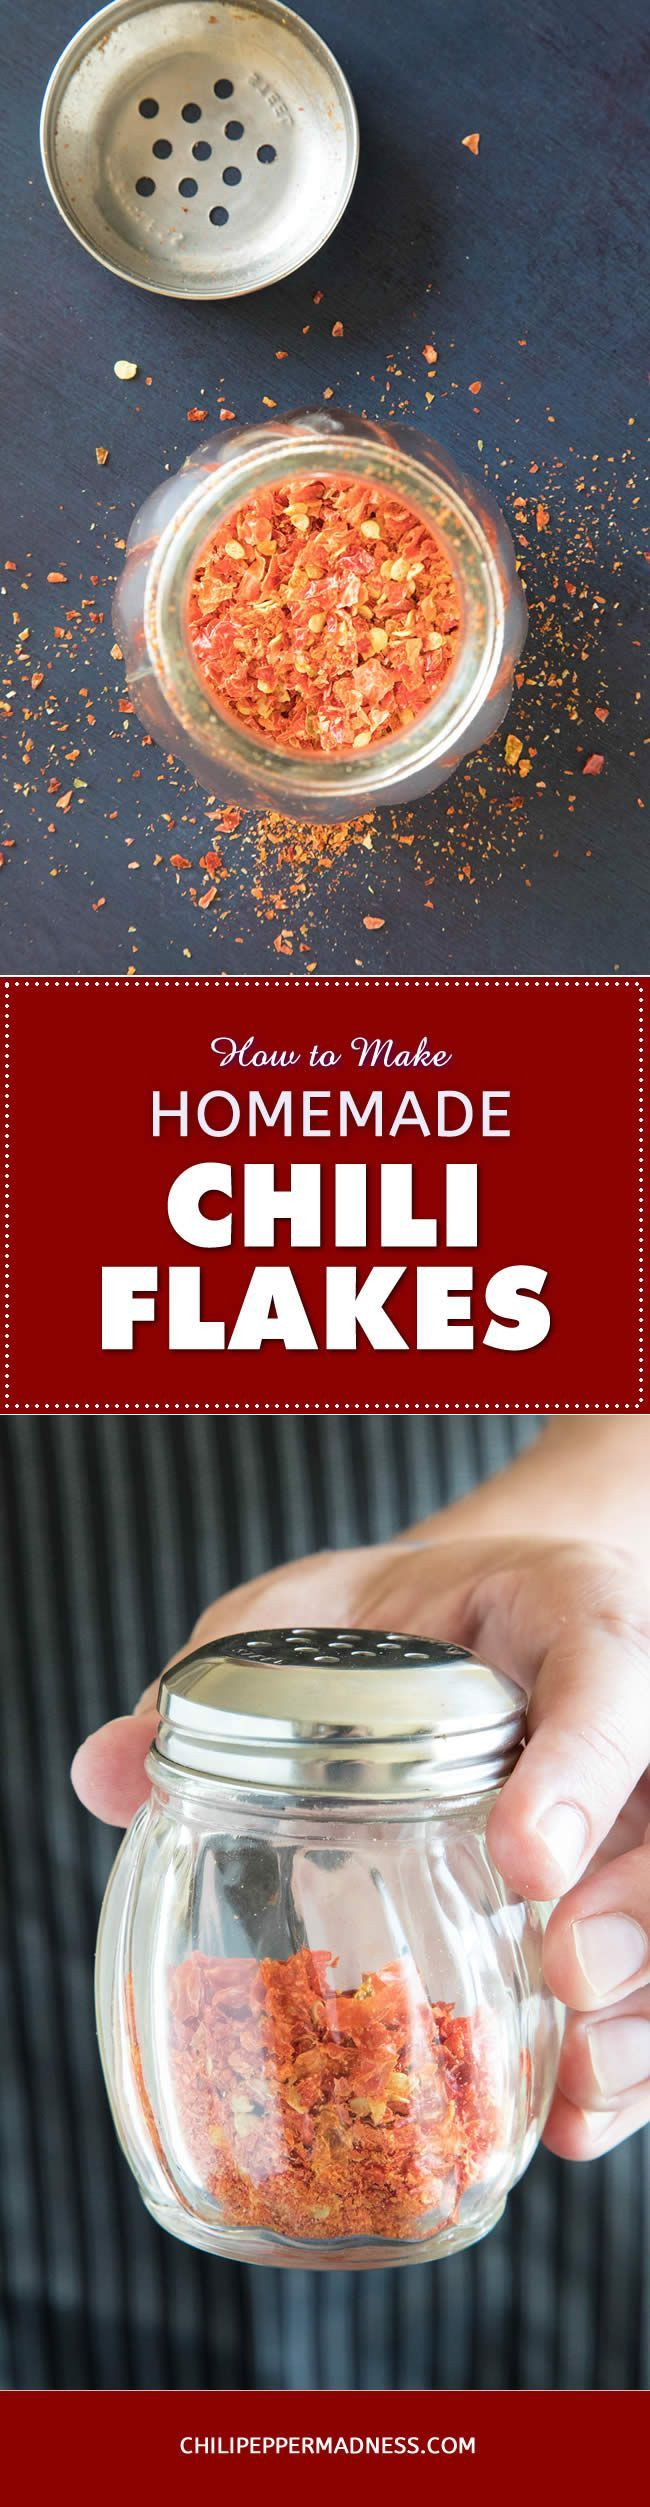 How to Make Homemade Chili Flakes – Use your dehydrator (or oven) to make your own chili flakes at home. They're perfect for dashing over pizza or any other food for a bit of zing and flavor. A great way to preserve your pepper harvest.